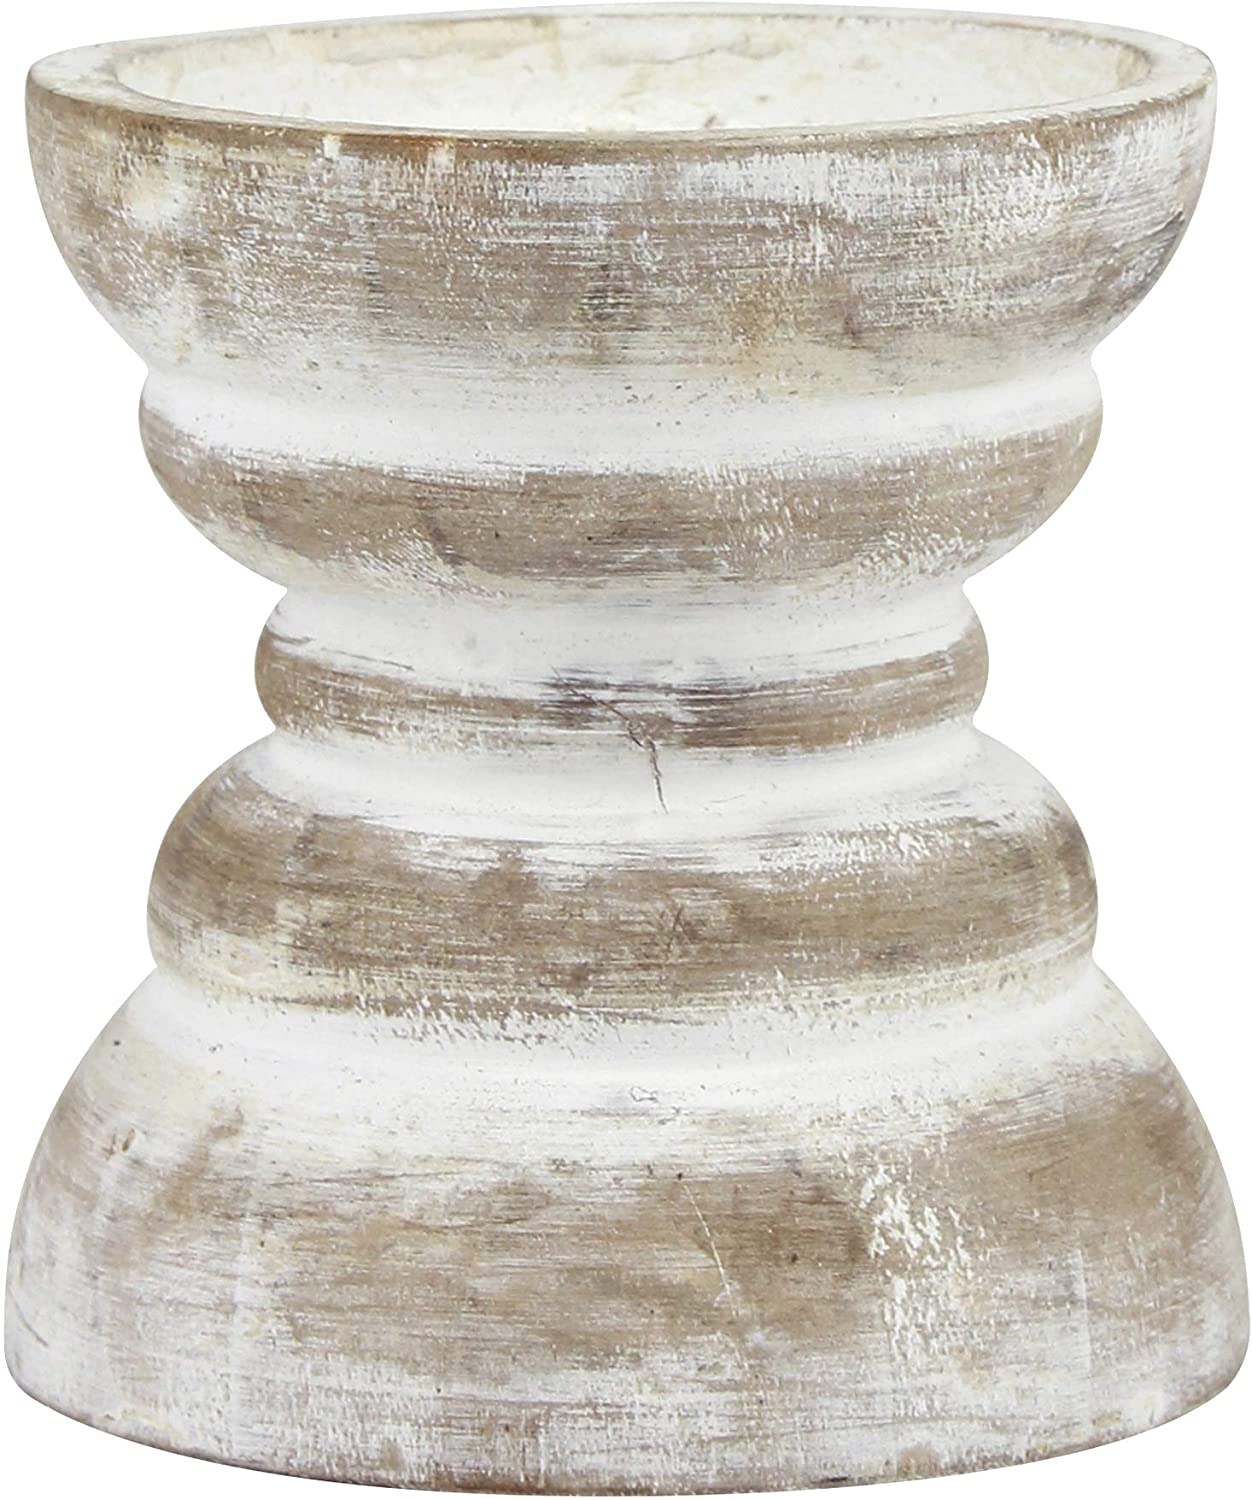 Amazon Com Stonebriar Antique White Wooden Pillar Candle Holder Vintage Seaside Pillar Stand For Dining Table Centerpiece Coffee Table Mantel Or Any Table Top Small Home Kitchen